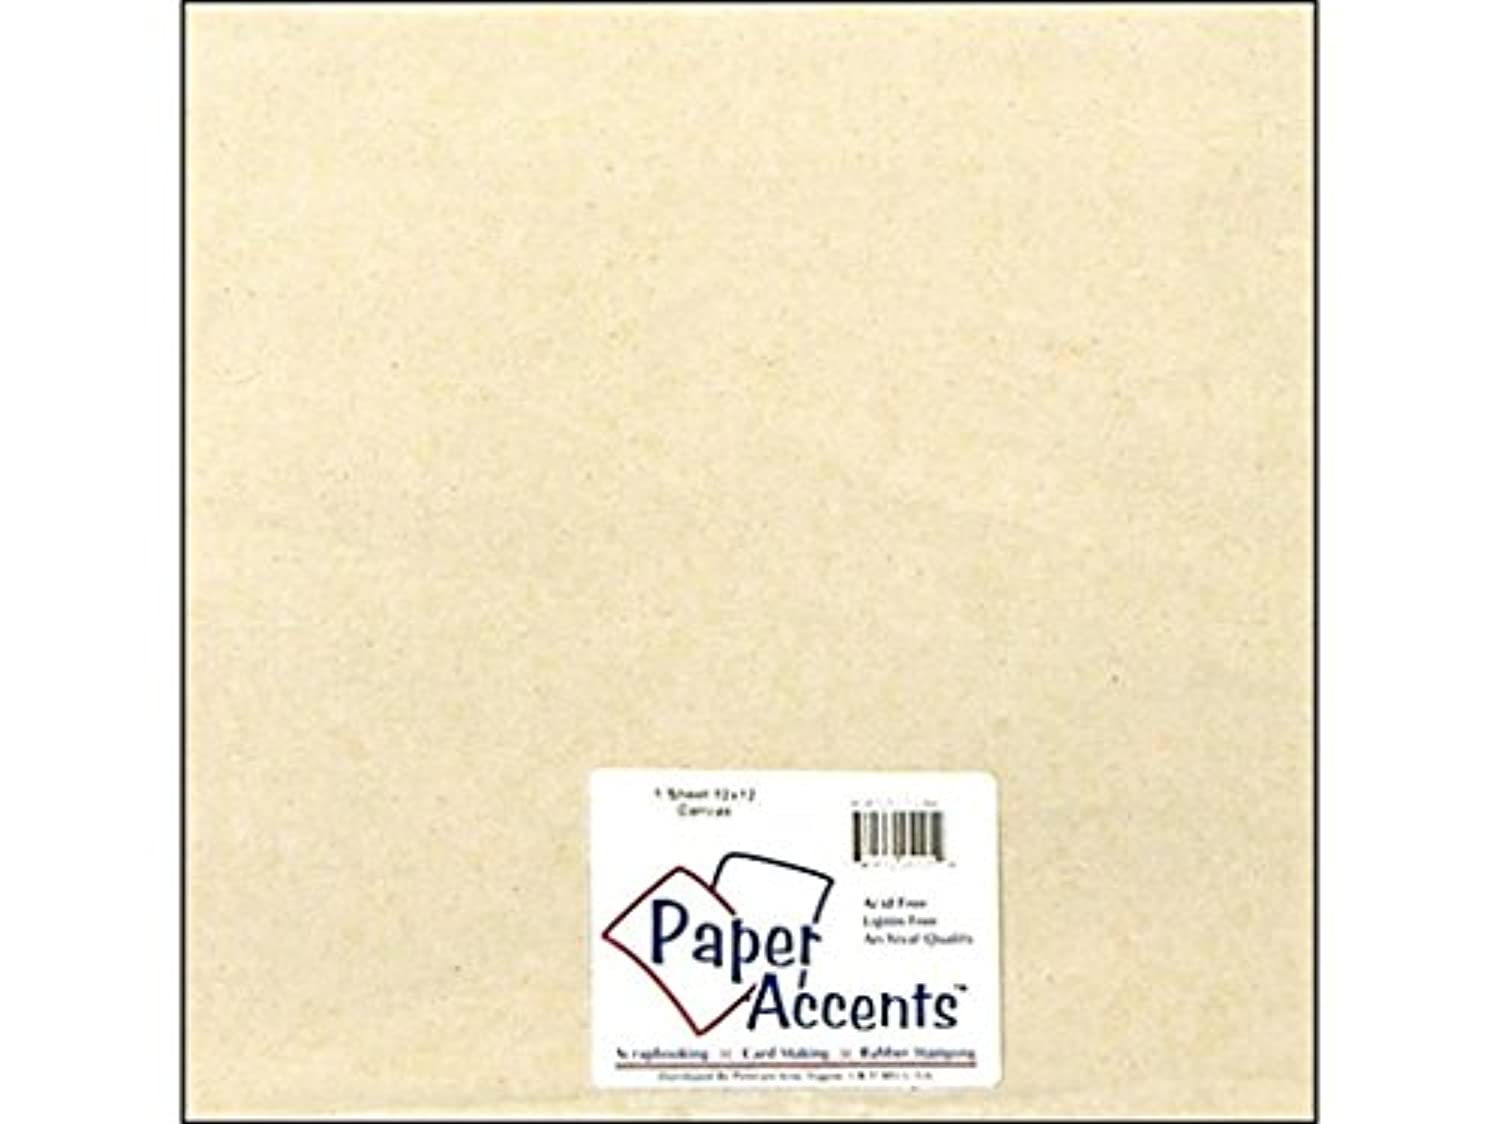 Accent Design Paper Accents ADP1212-1.CAN 12x12 Natural Chipboard Fabric Sheet Canvas